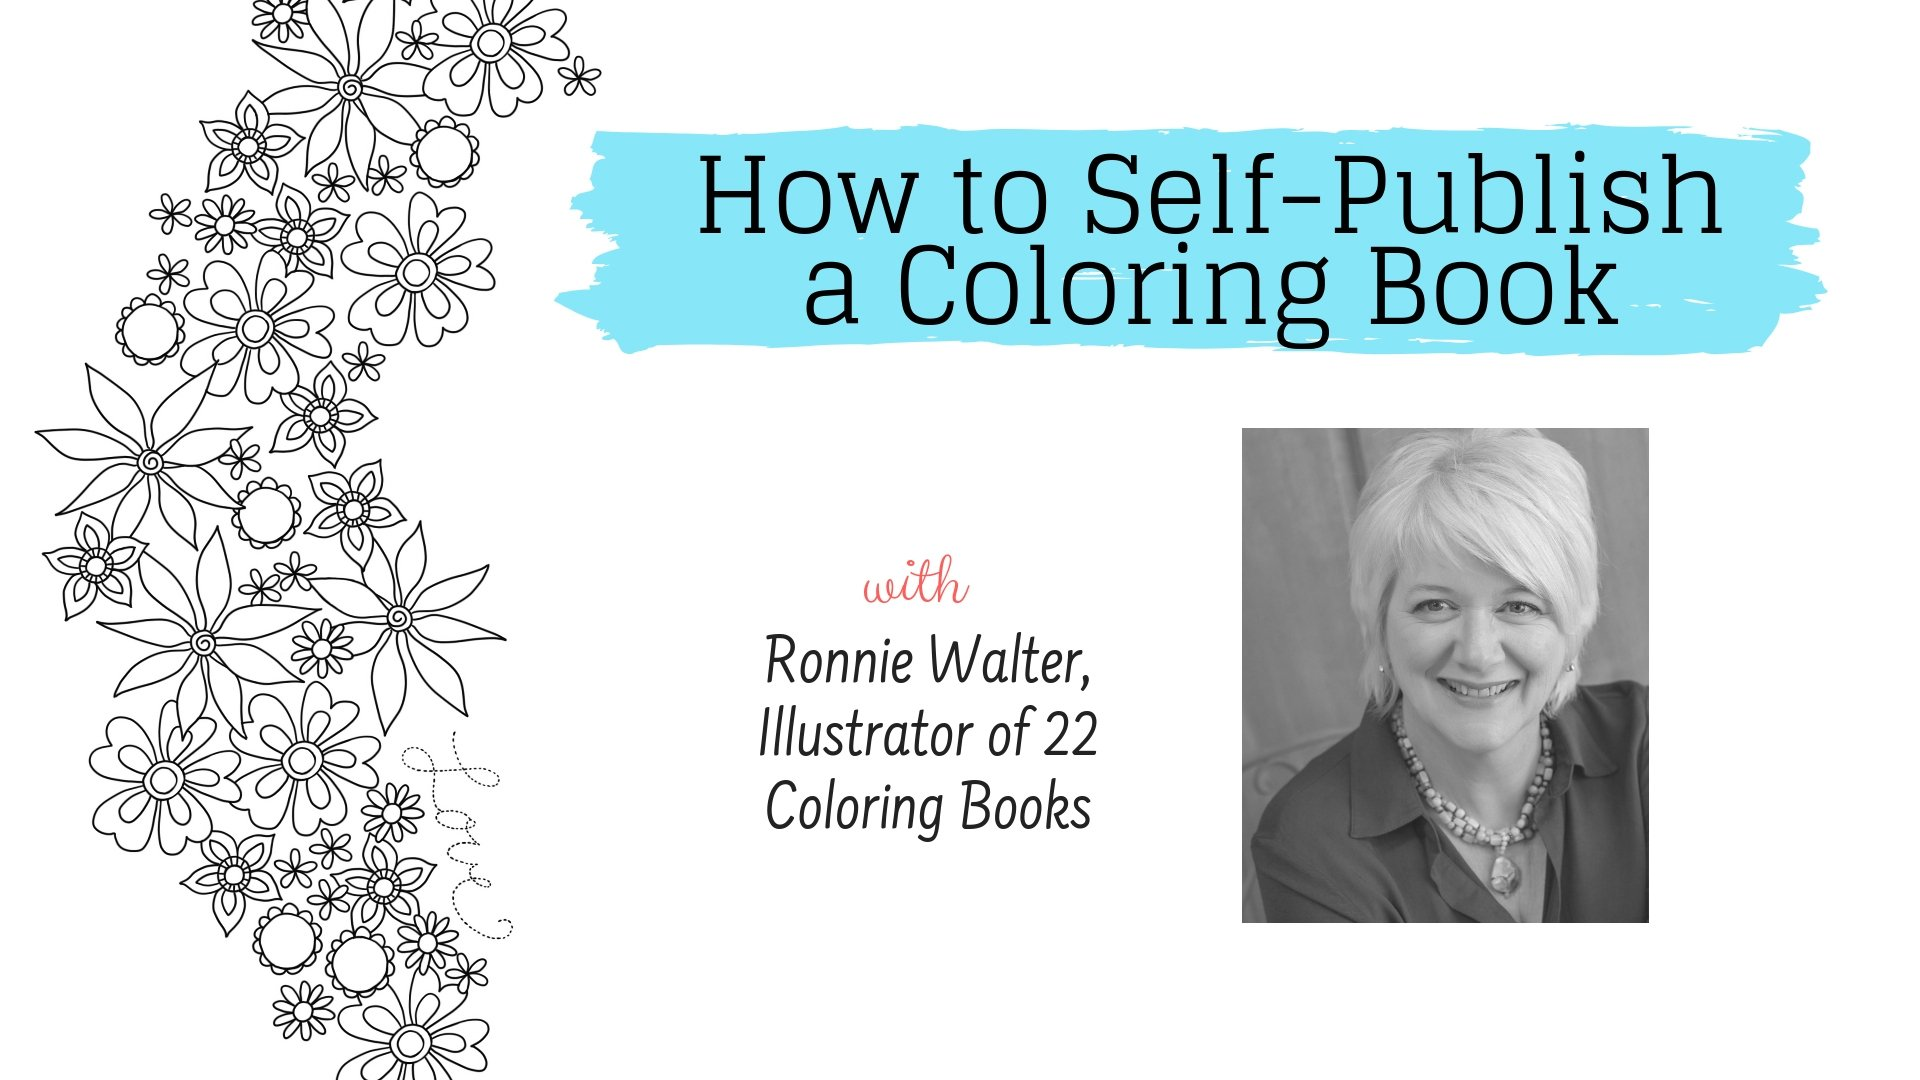 How to Self-Publish a Coloring Book | Ronnie Walter | Skillshare